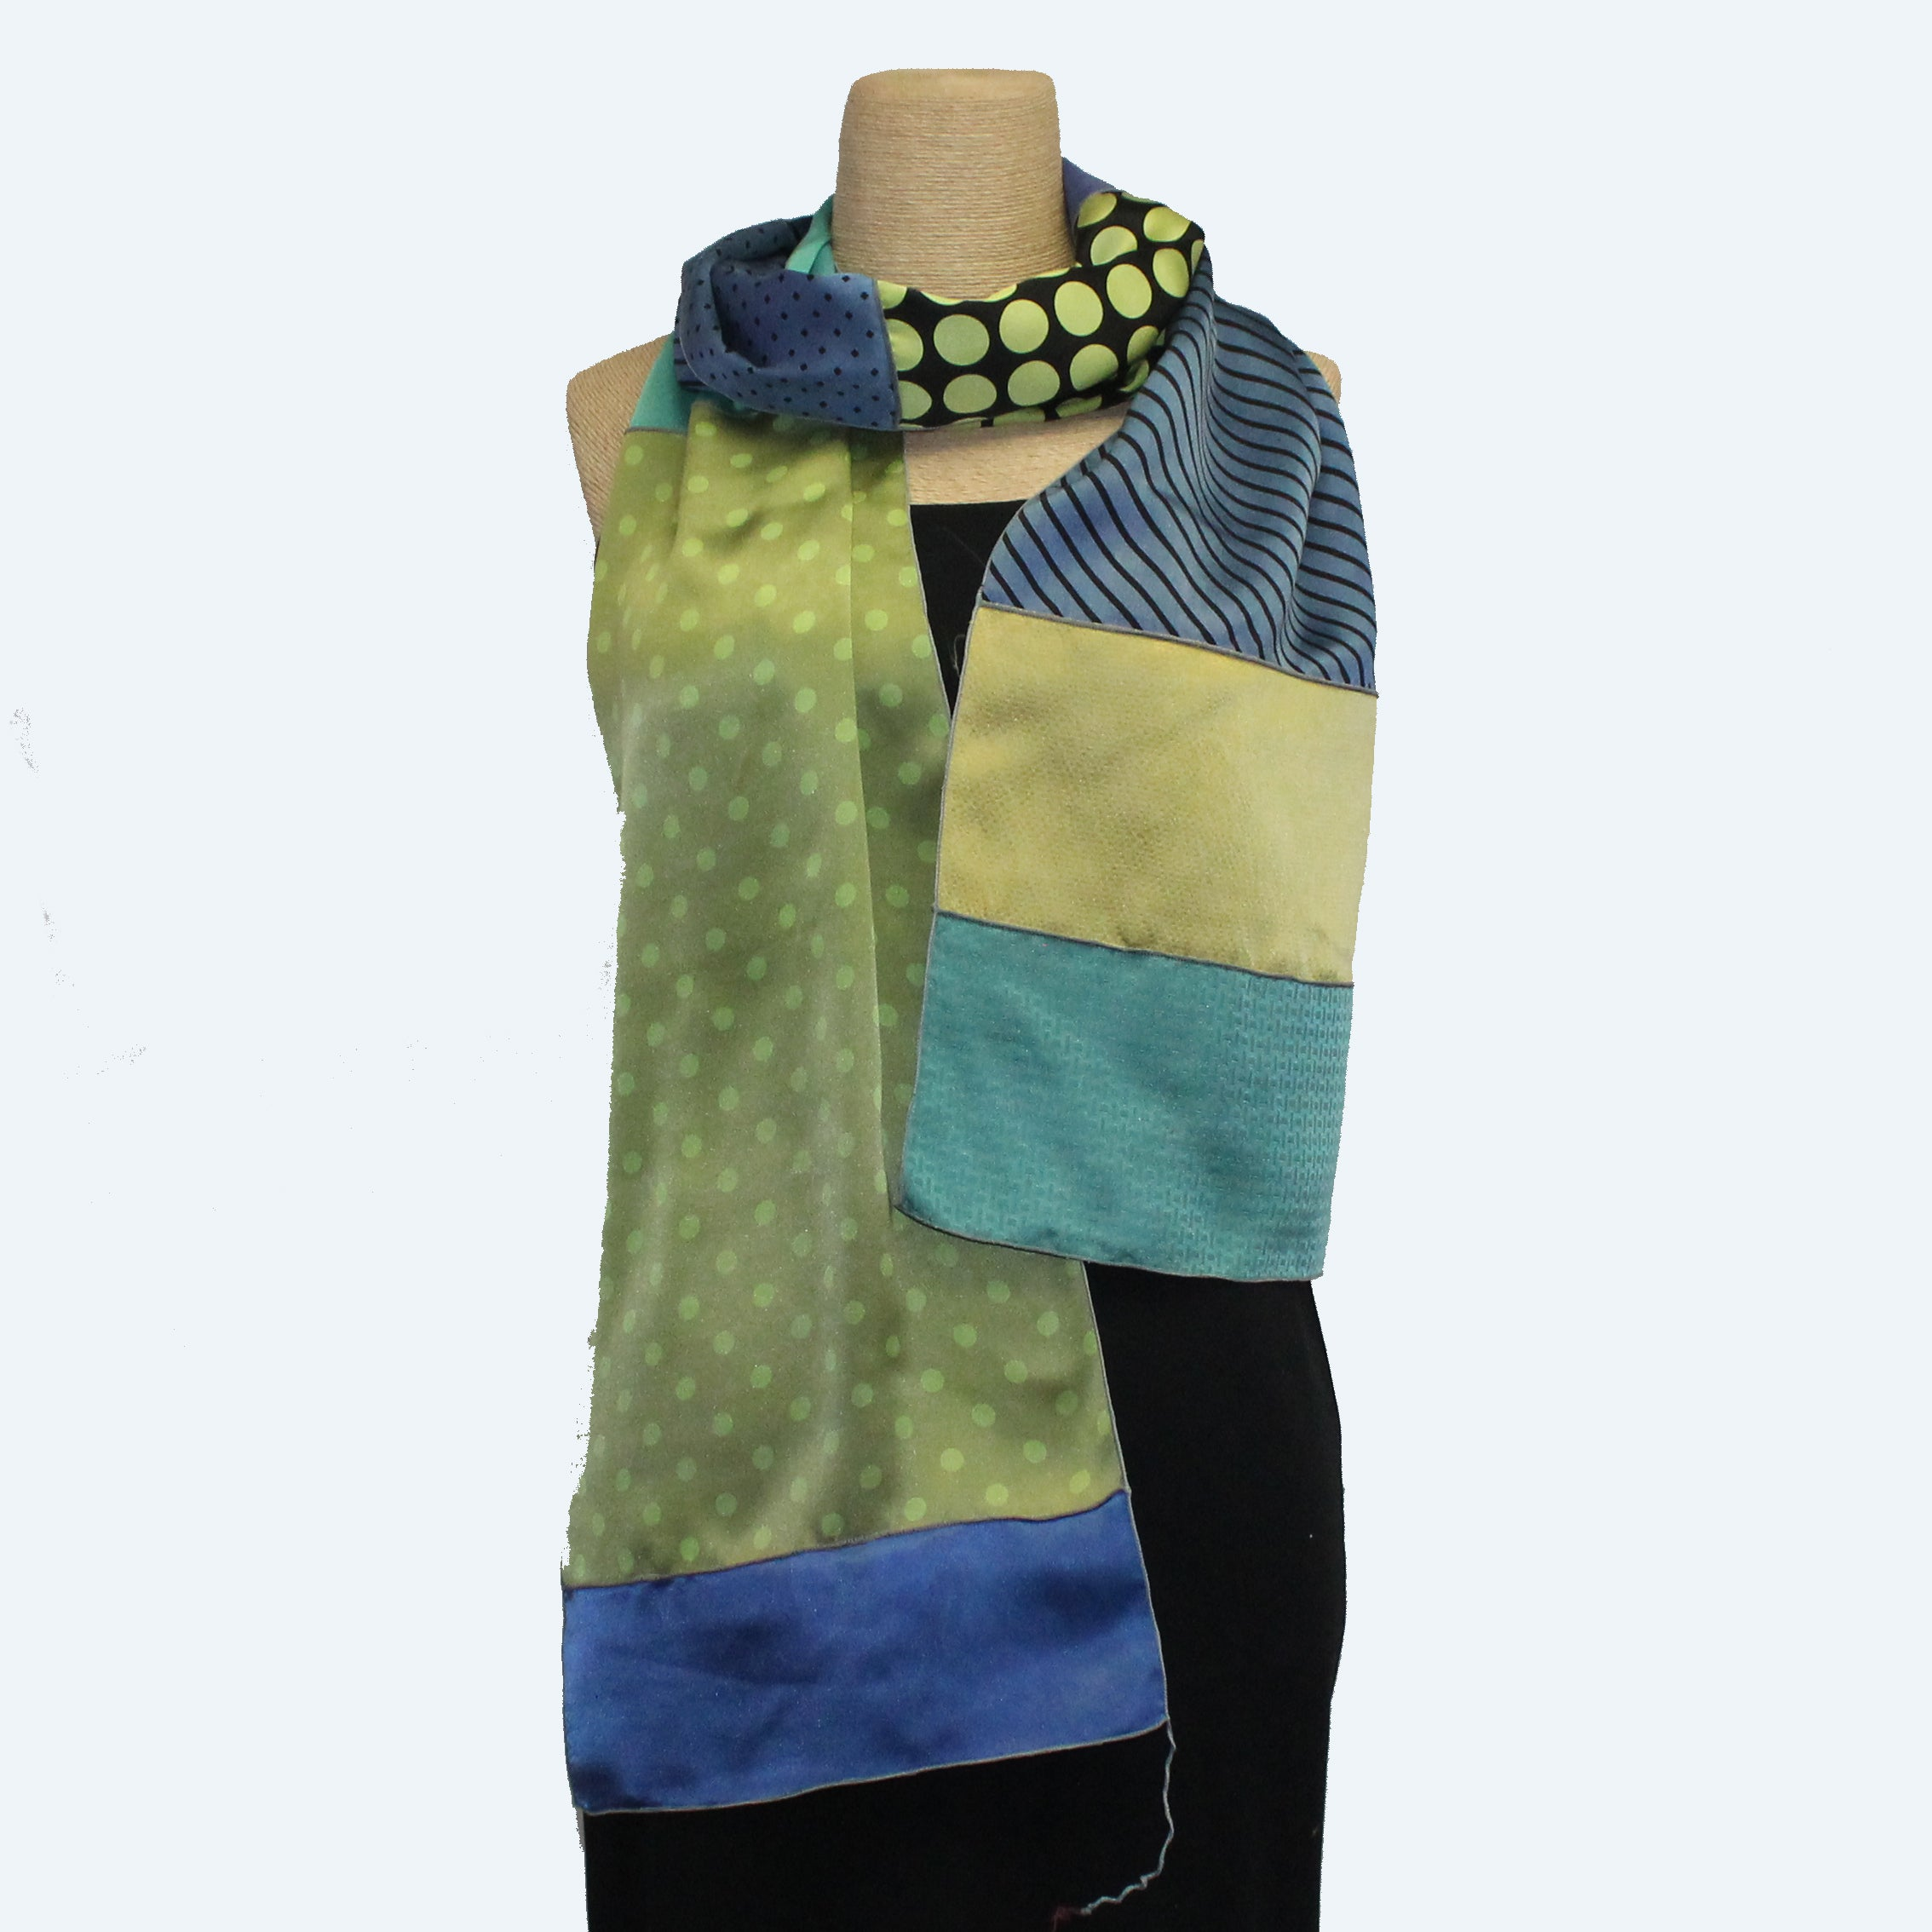 Judith Bird Scarf, SilkSingles, Bunch of Green Dots